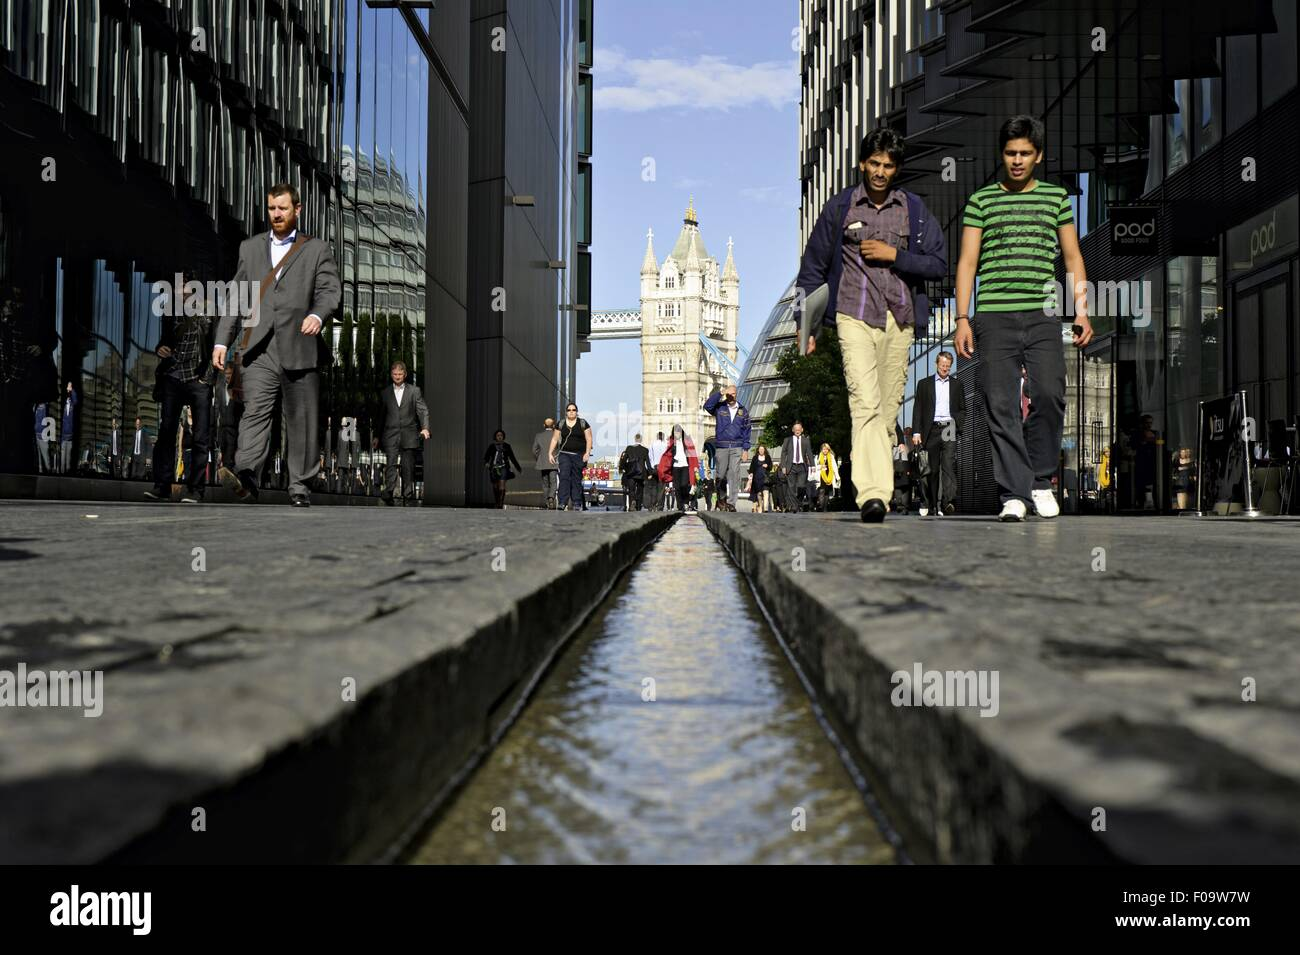 Low angle view of people and Rill and Tower Bridge, Borough of Southwark, London, England - Stock Image